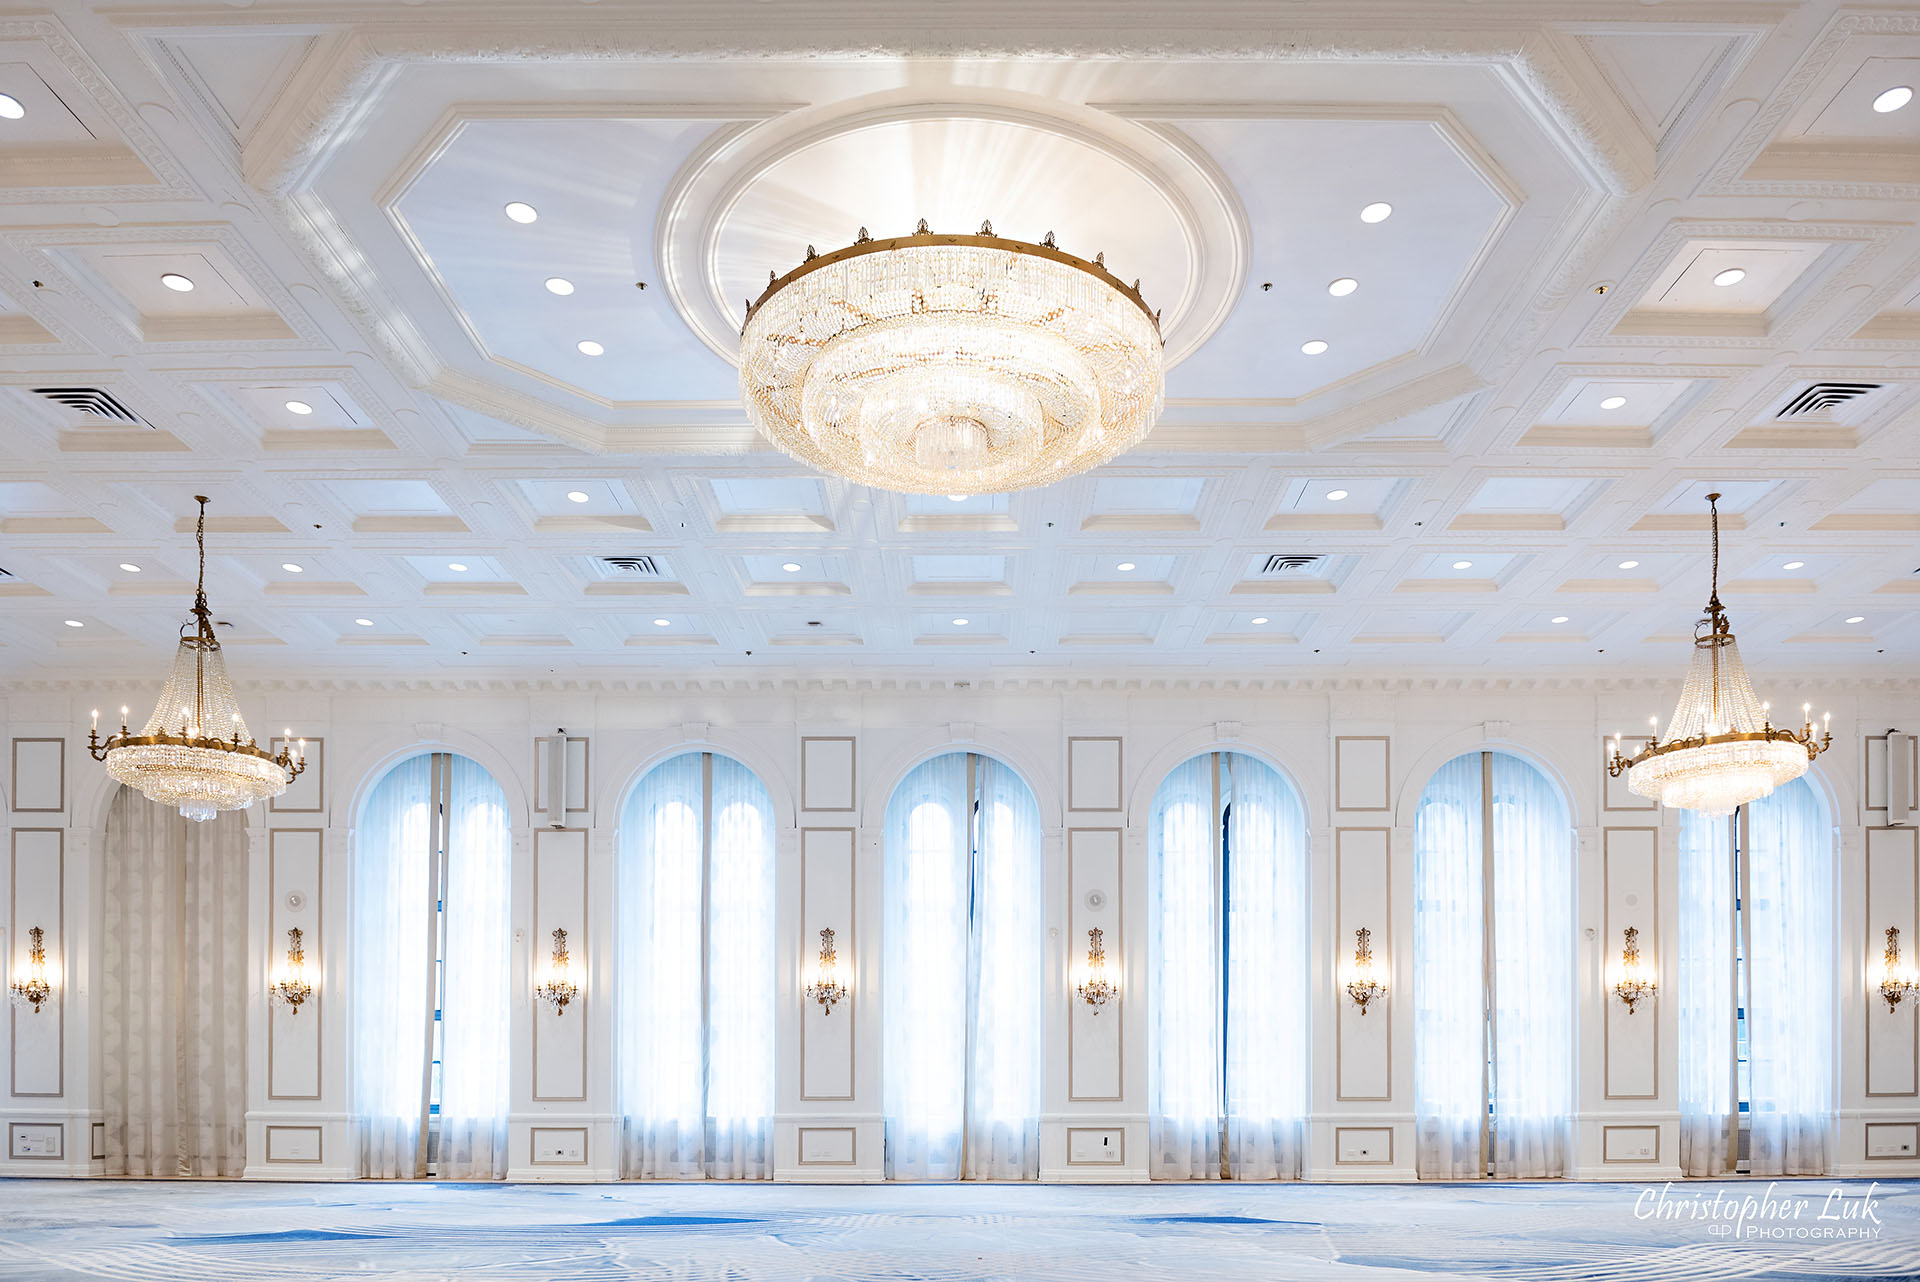 Toronto Fairmont Royal York Hotel Wedding Christopher Luk Photographer Photography Concert Hall Wide Crystal Chandelier